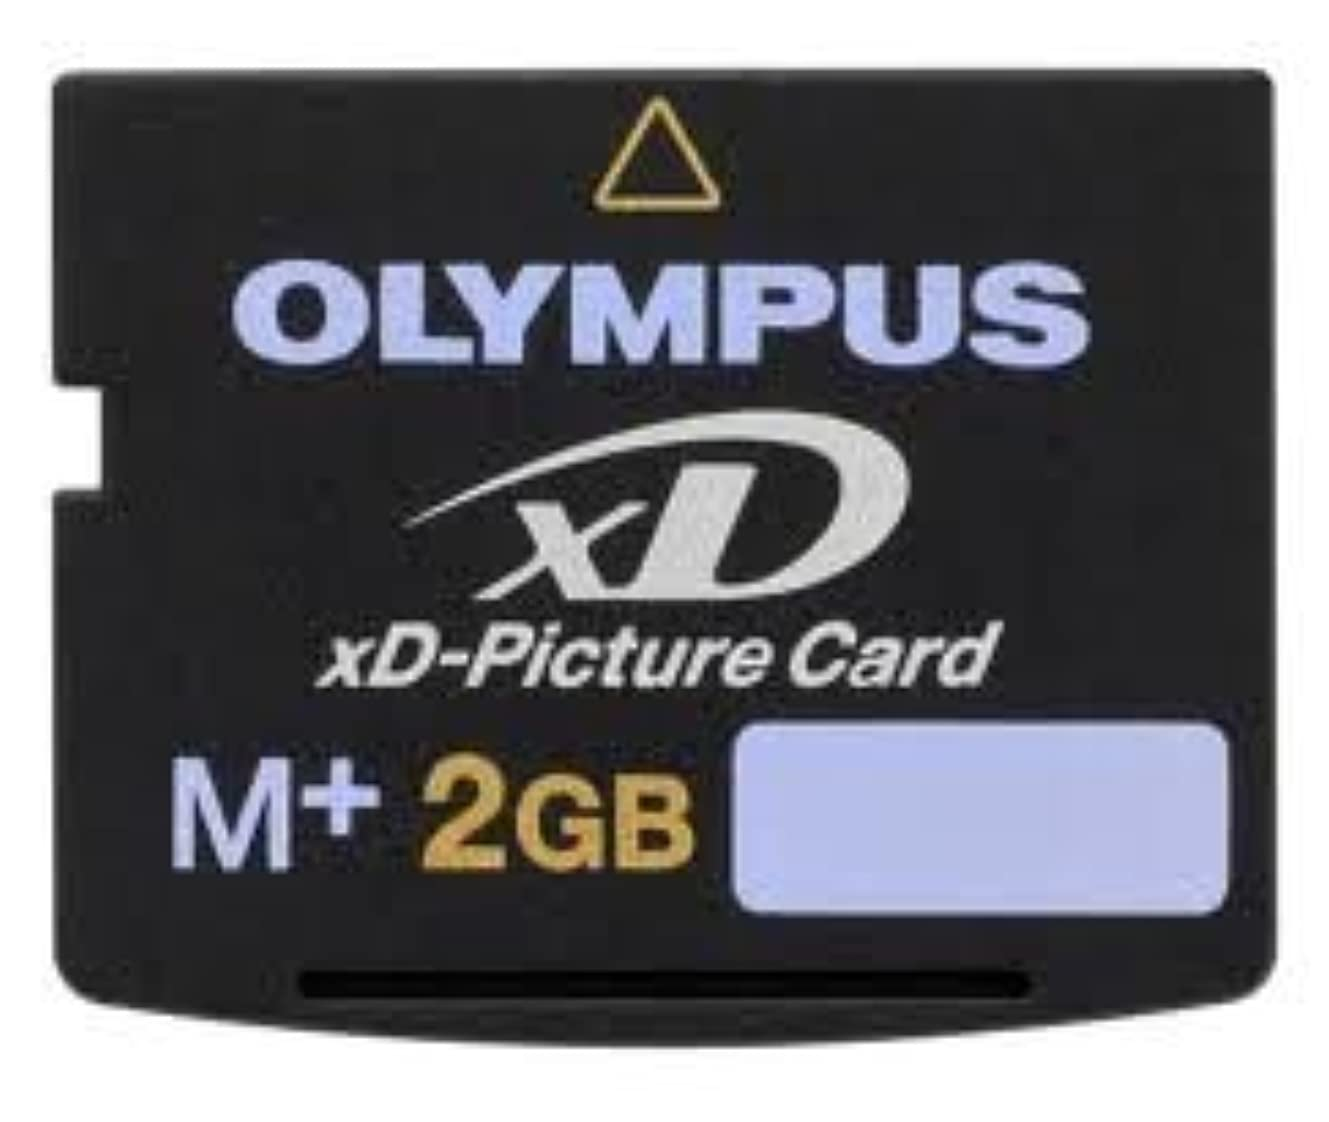 悪性腫瘍急降下彫るOlympus SP-590UZ Digital Camera Memory Card 2GB xD-Picture Card (M+ Type) by Olympus